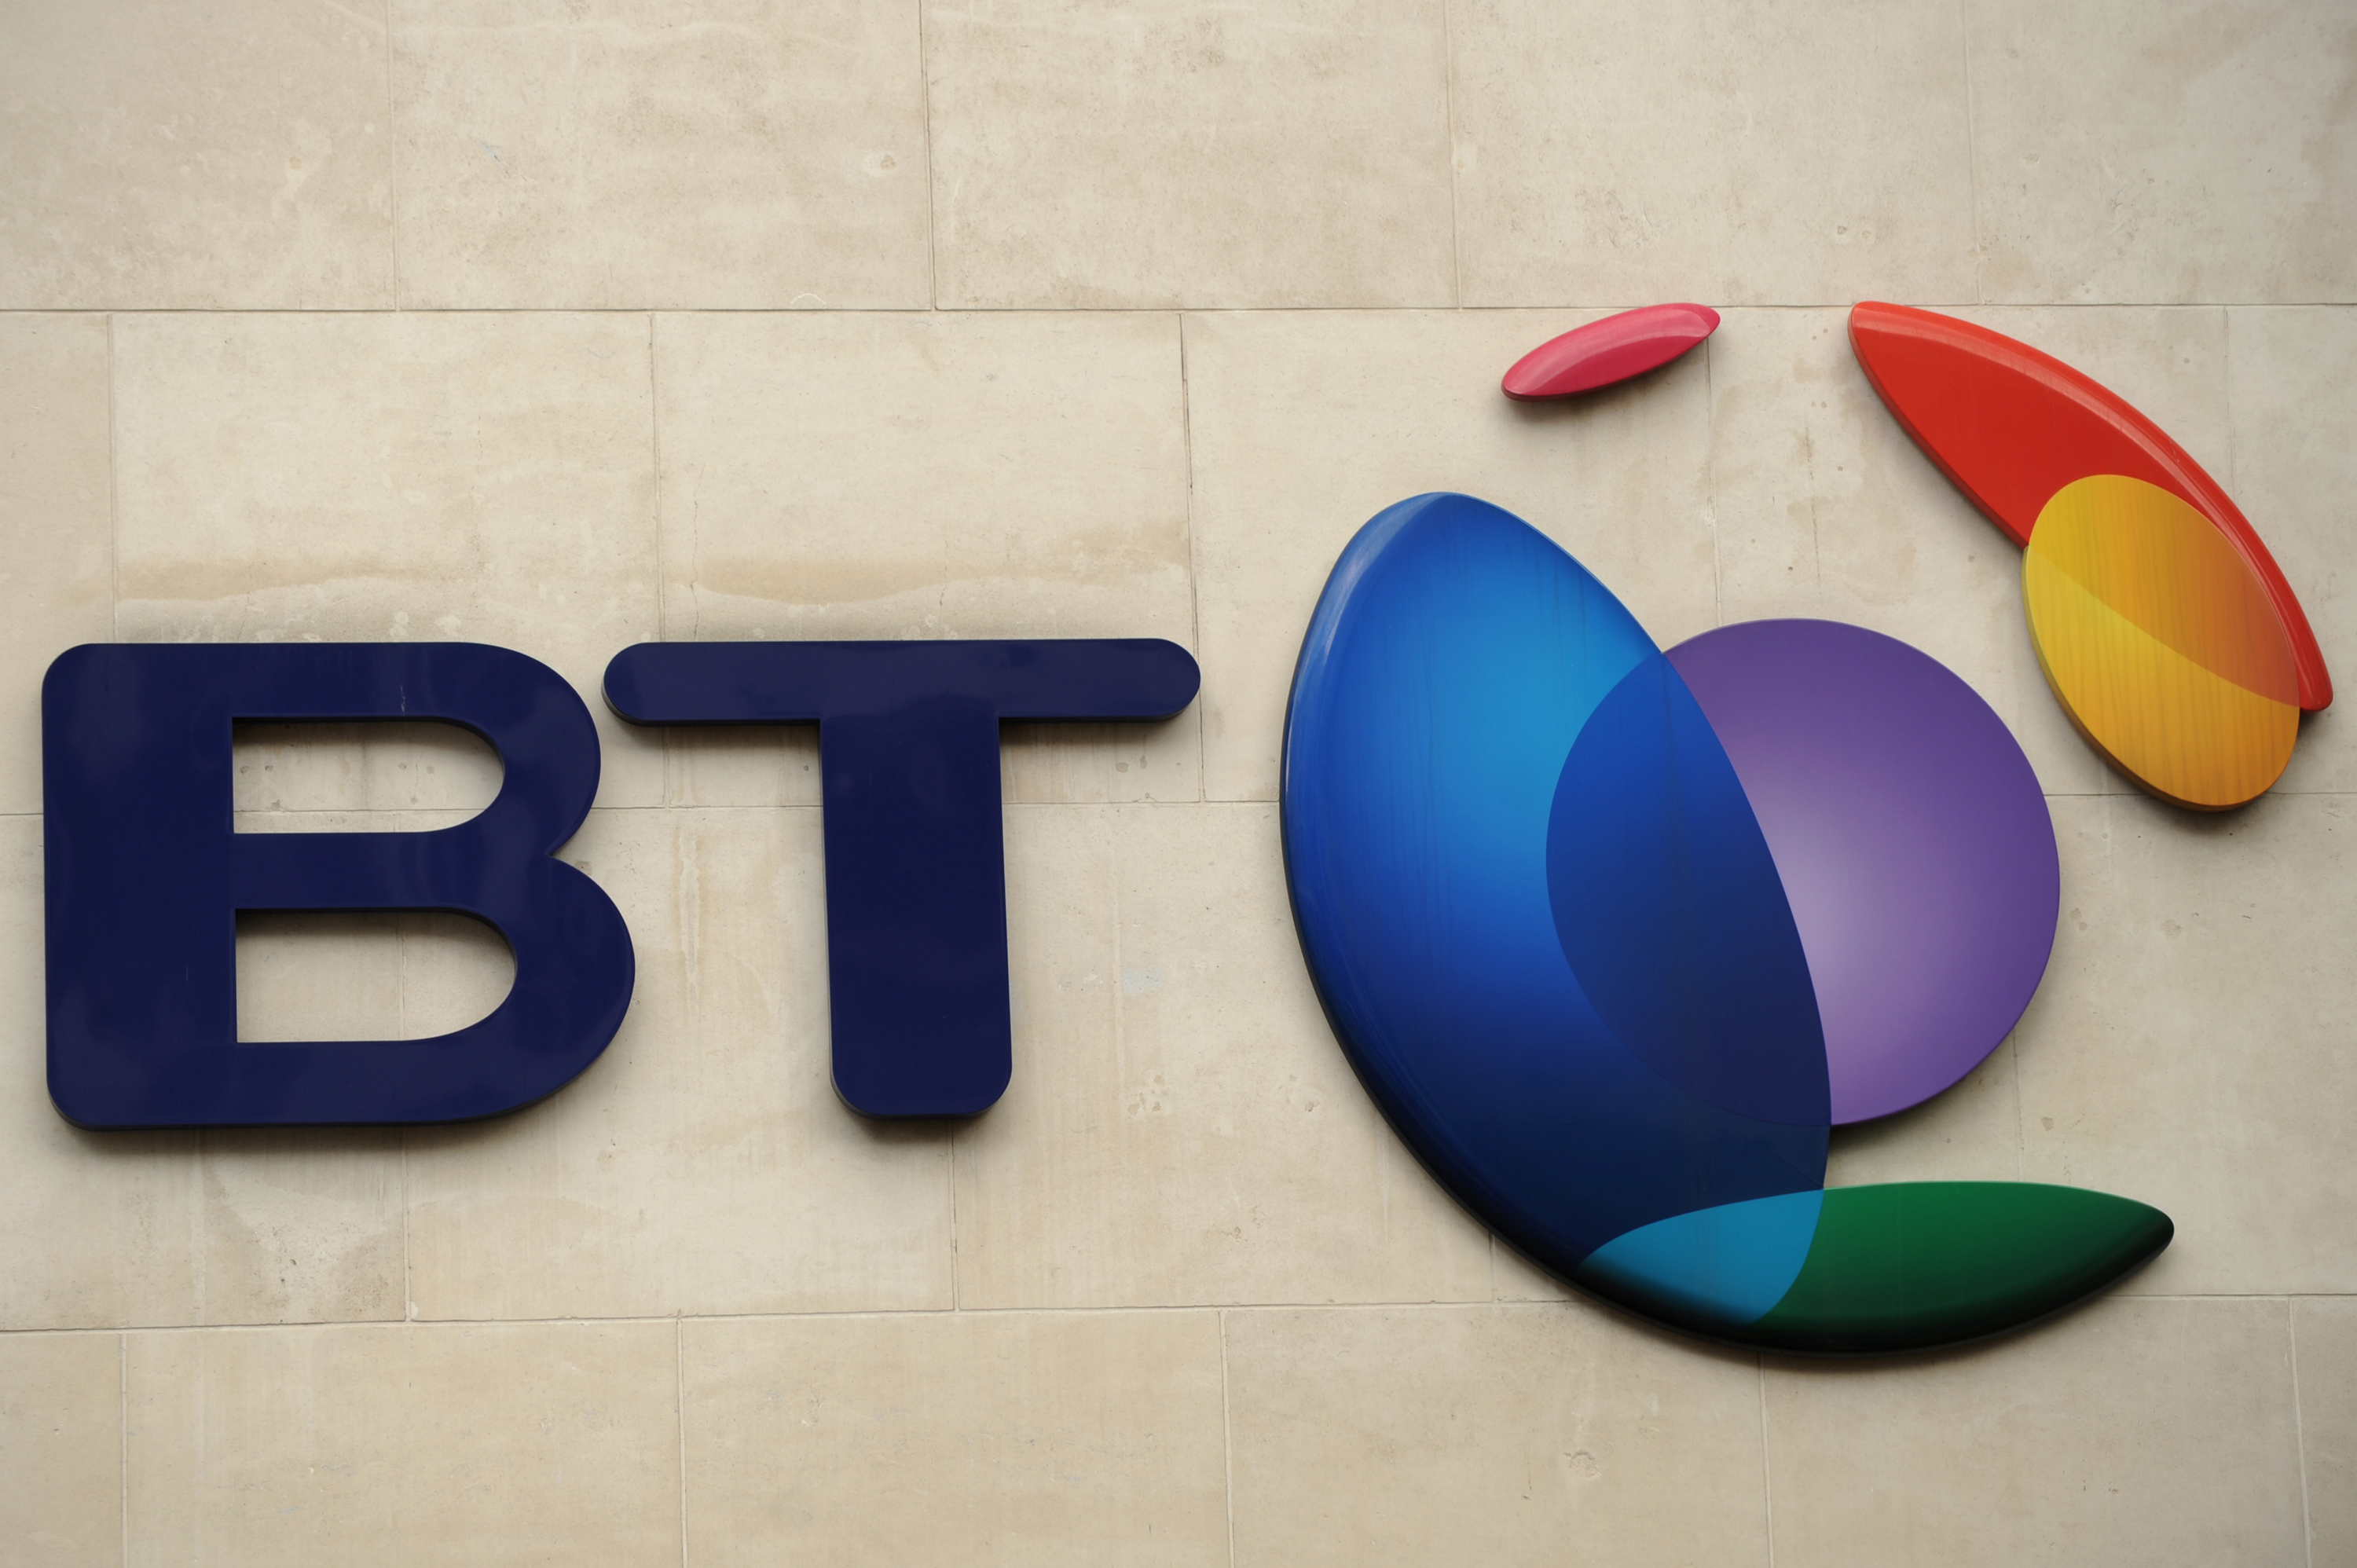 BT Group 'leads push for timetable' on Britain's big broadband switch